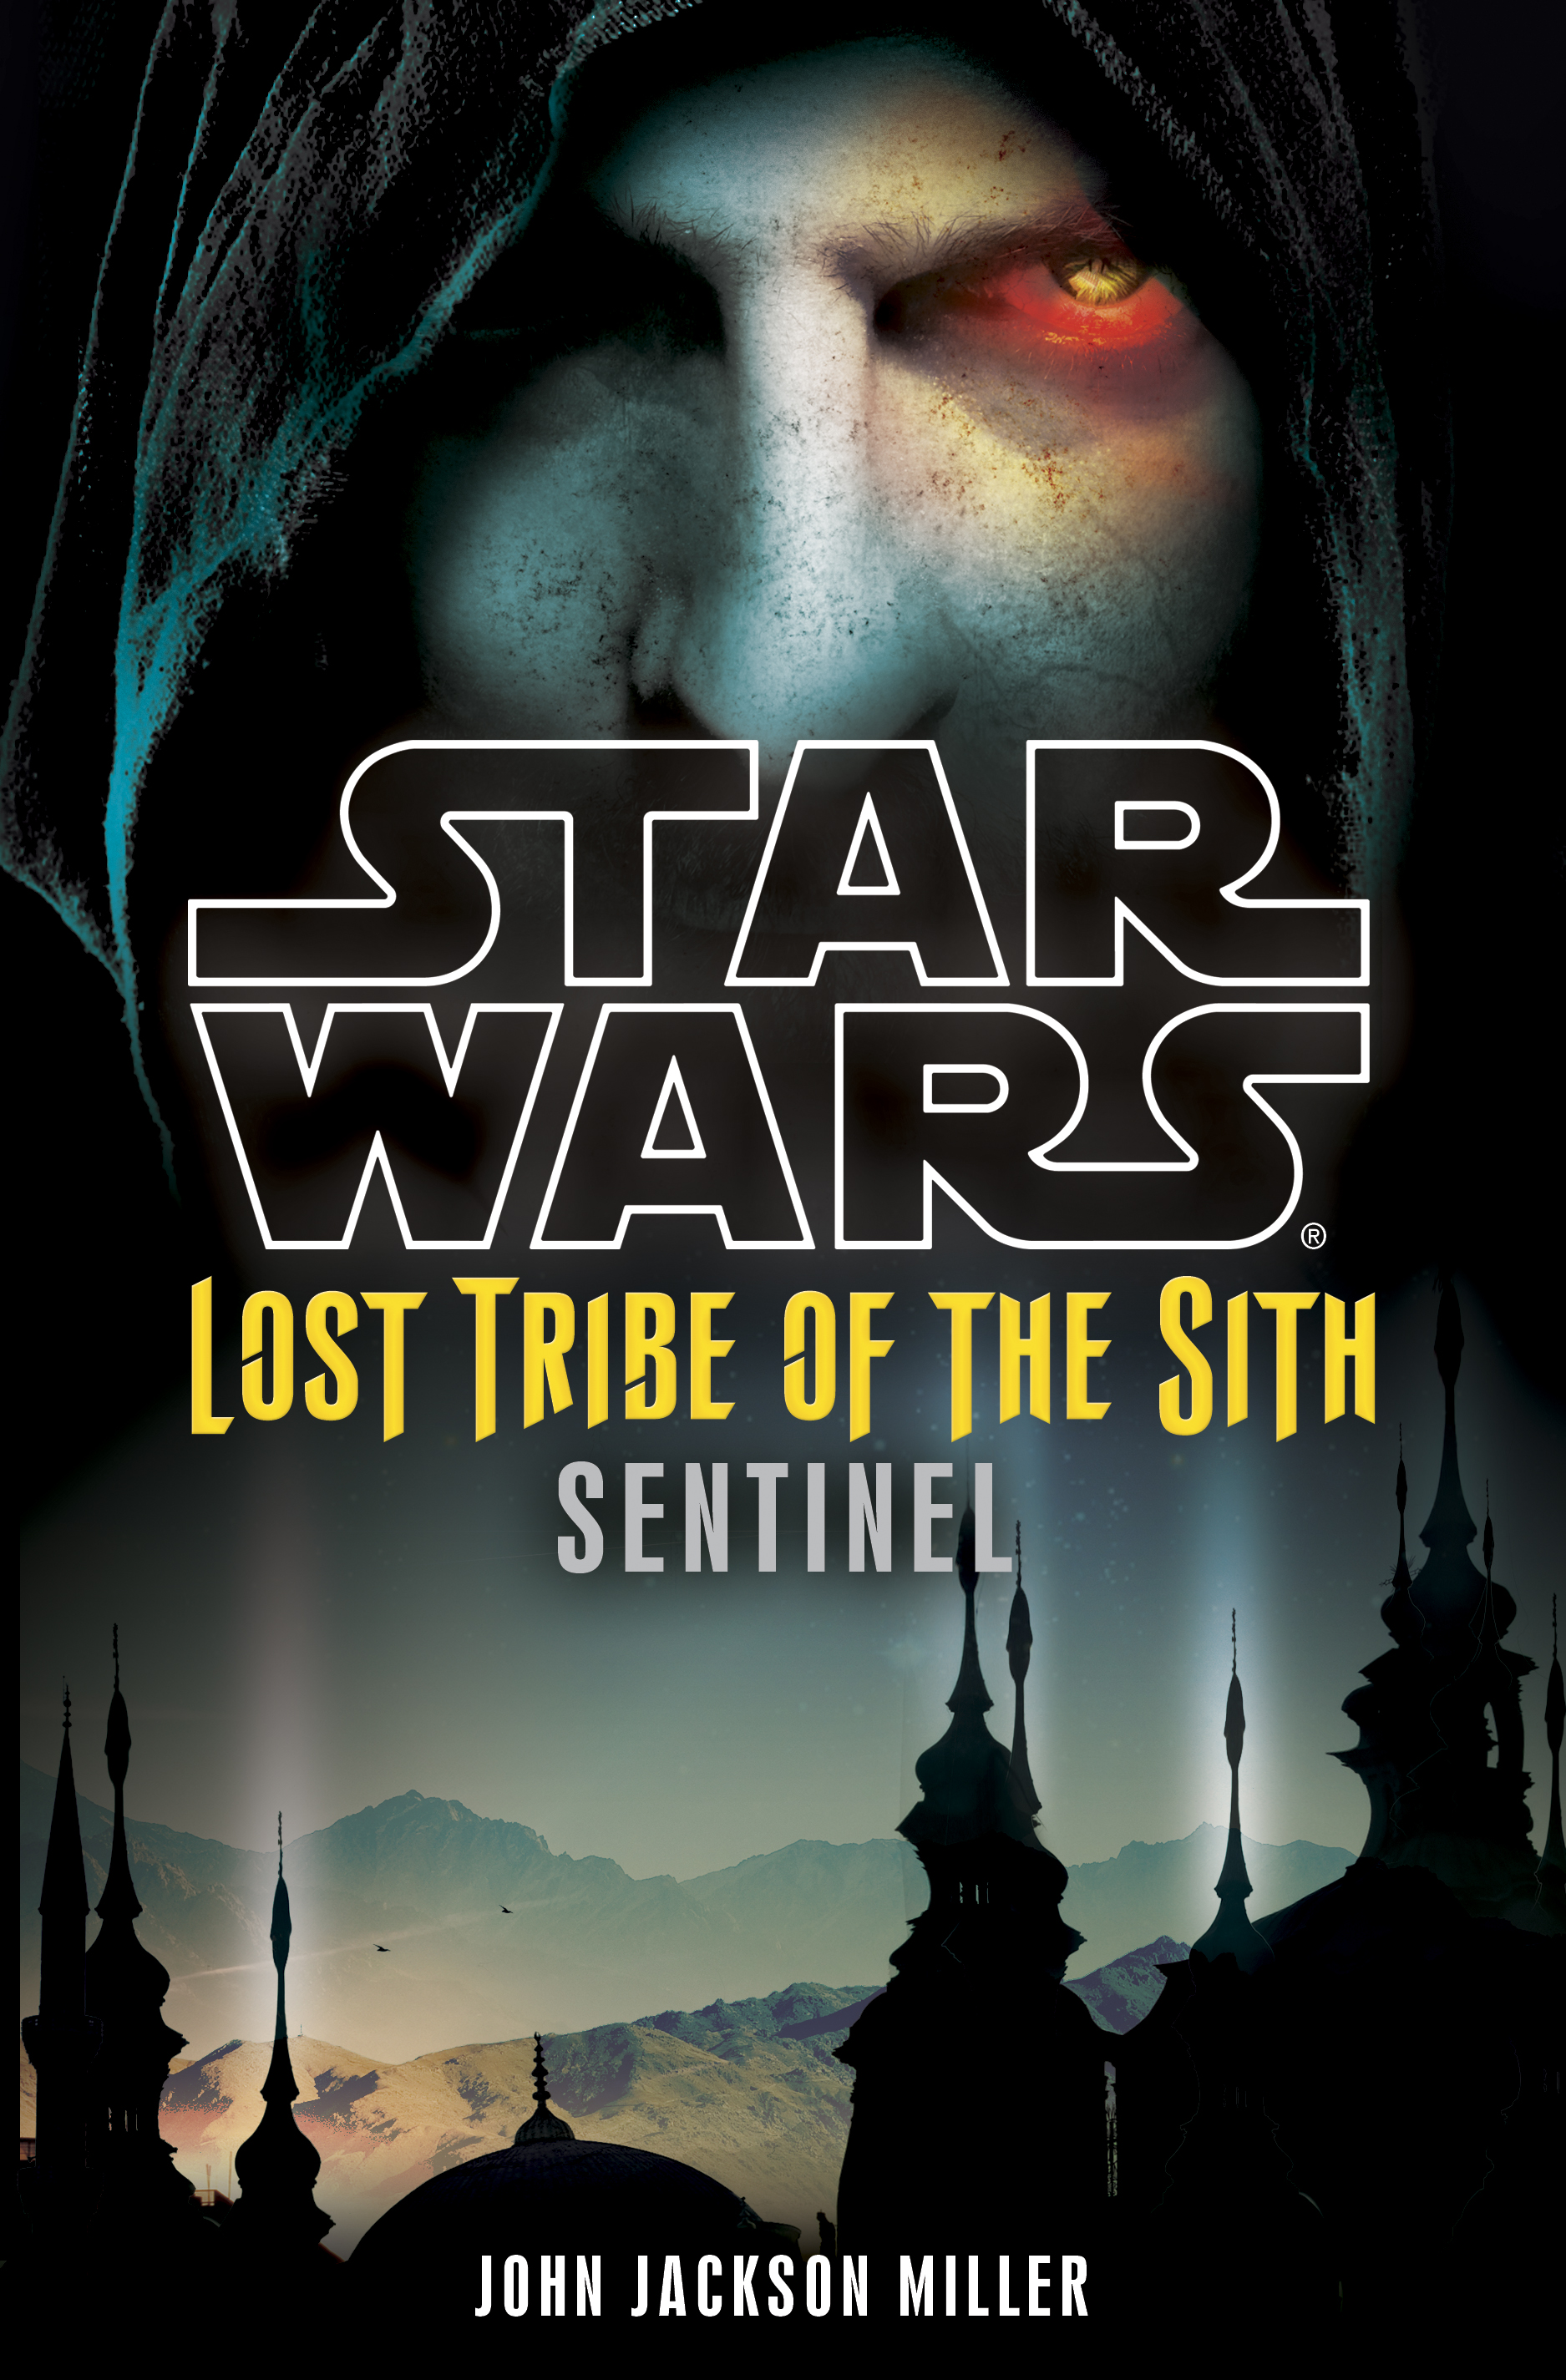 Star Wars Lost Tribe of the Sith: Sentinel